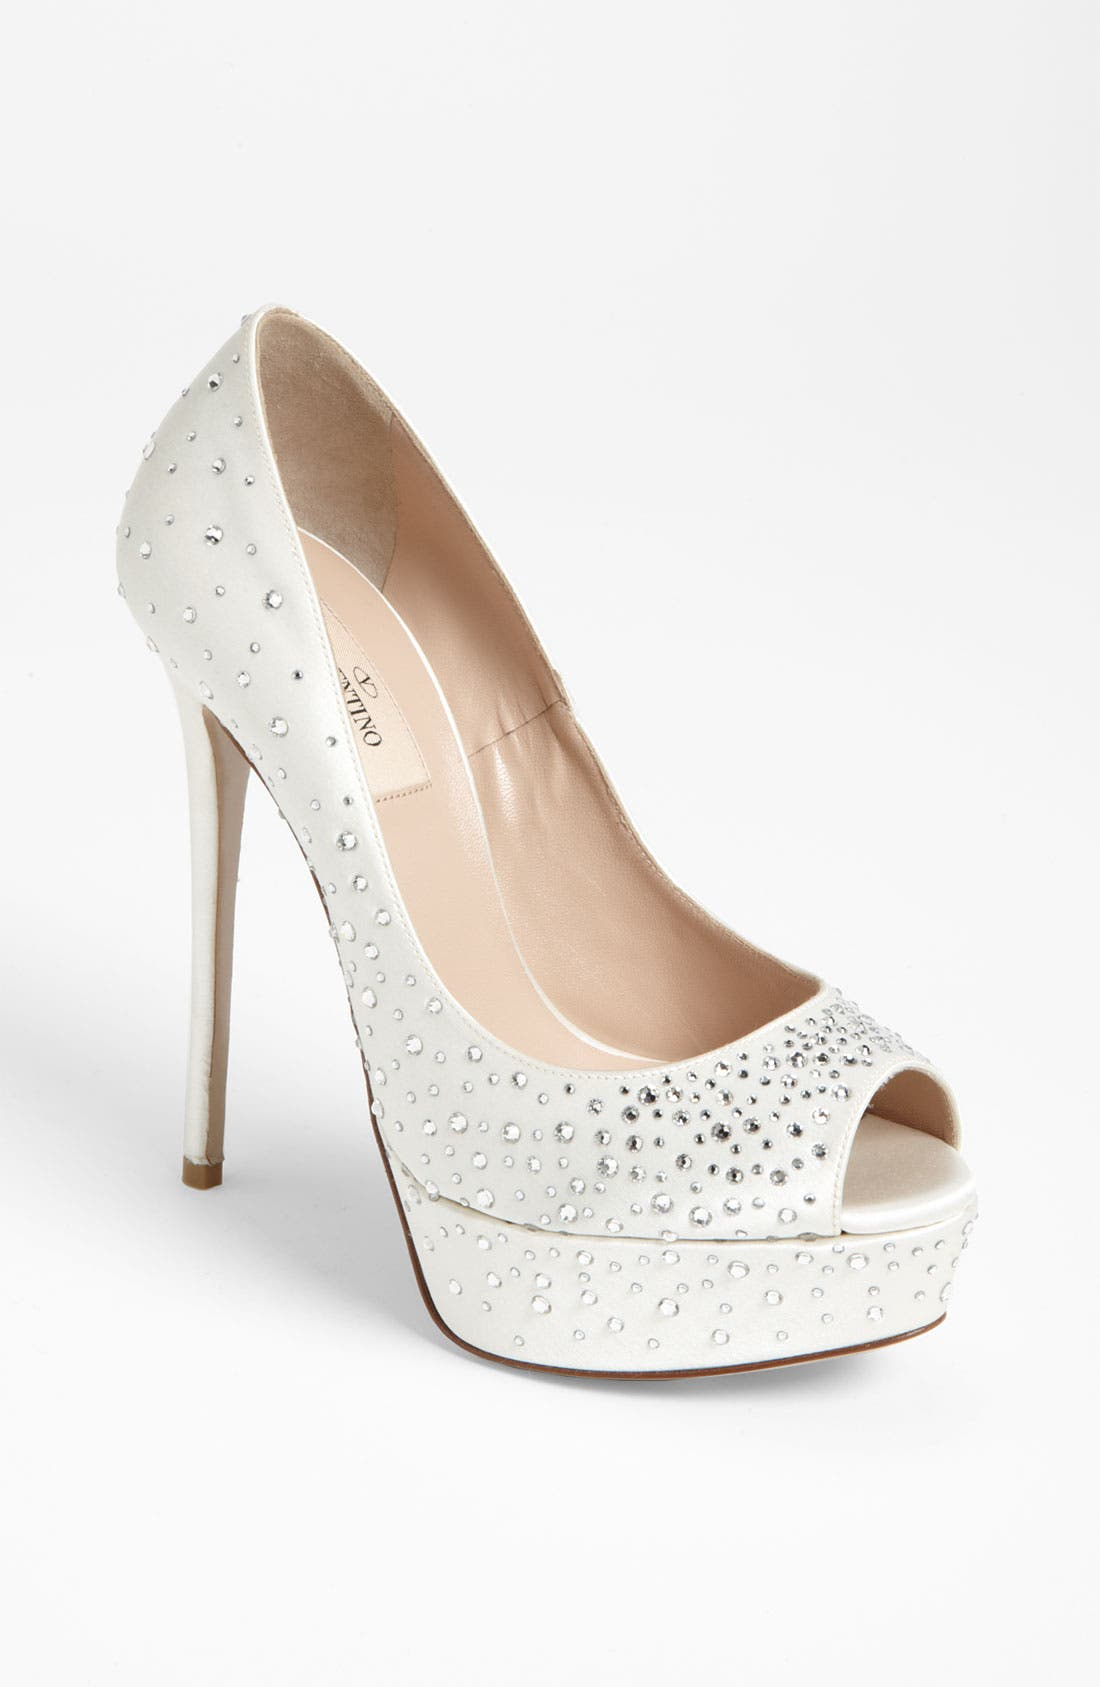 Alternate Image 1 Selected - Valentino 'Bridal' Open Toe Pump